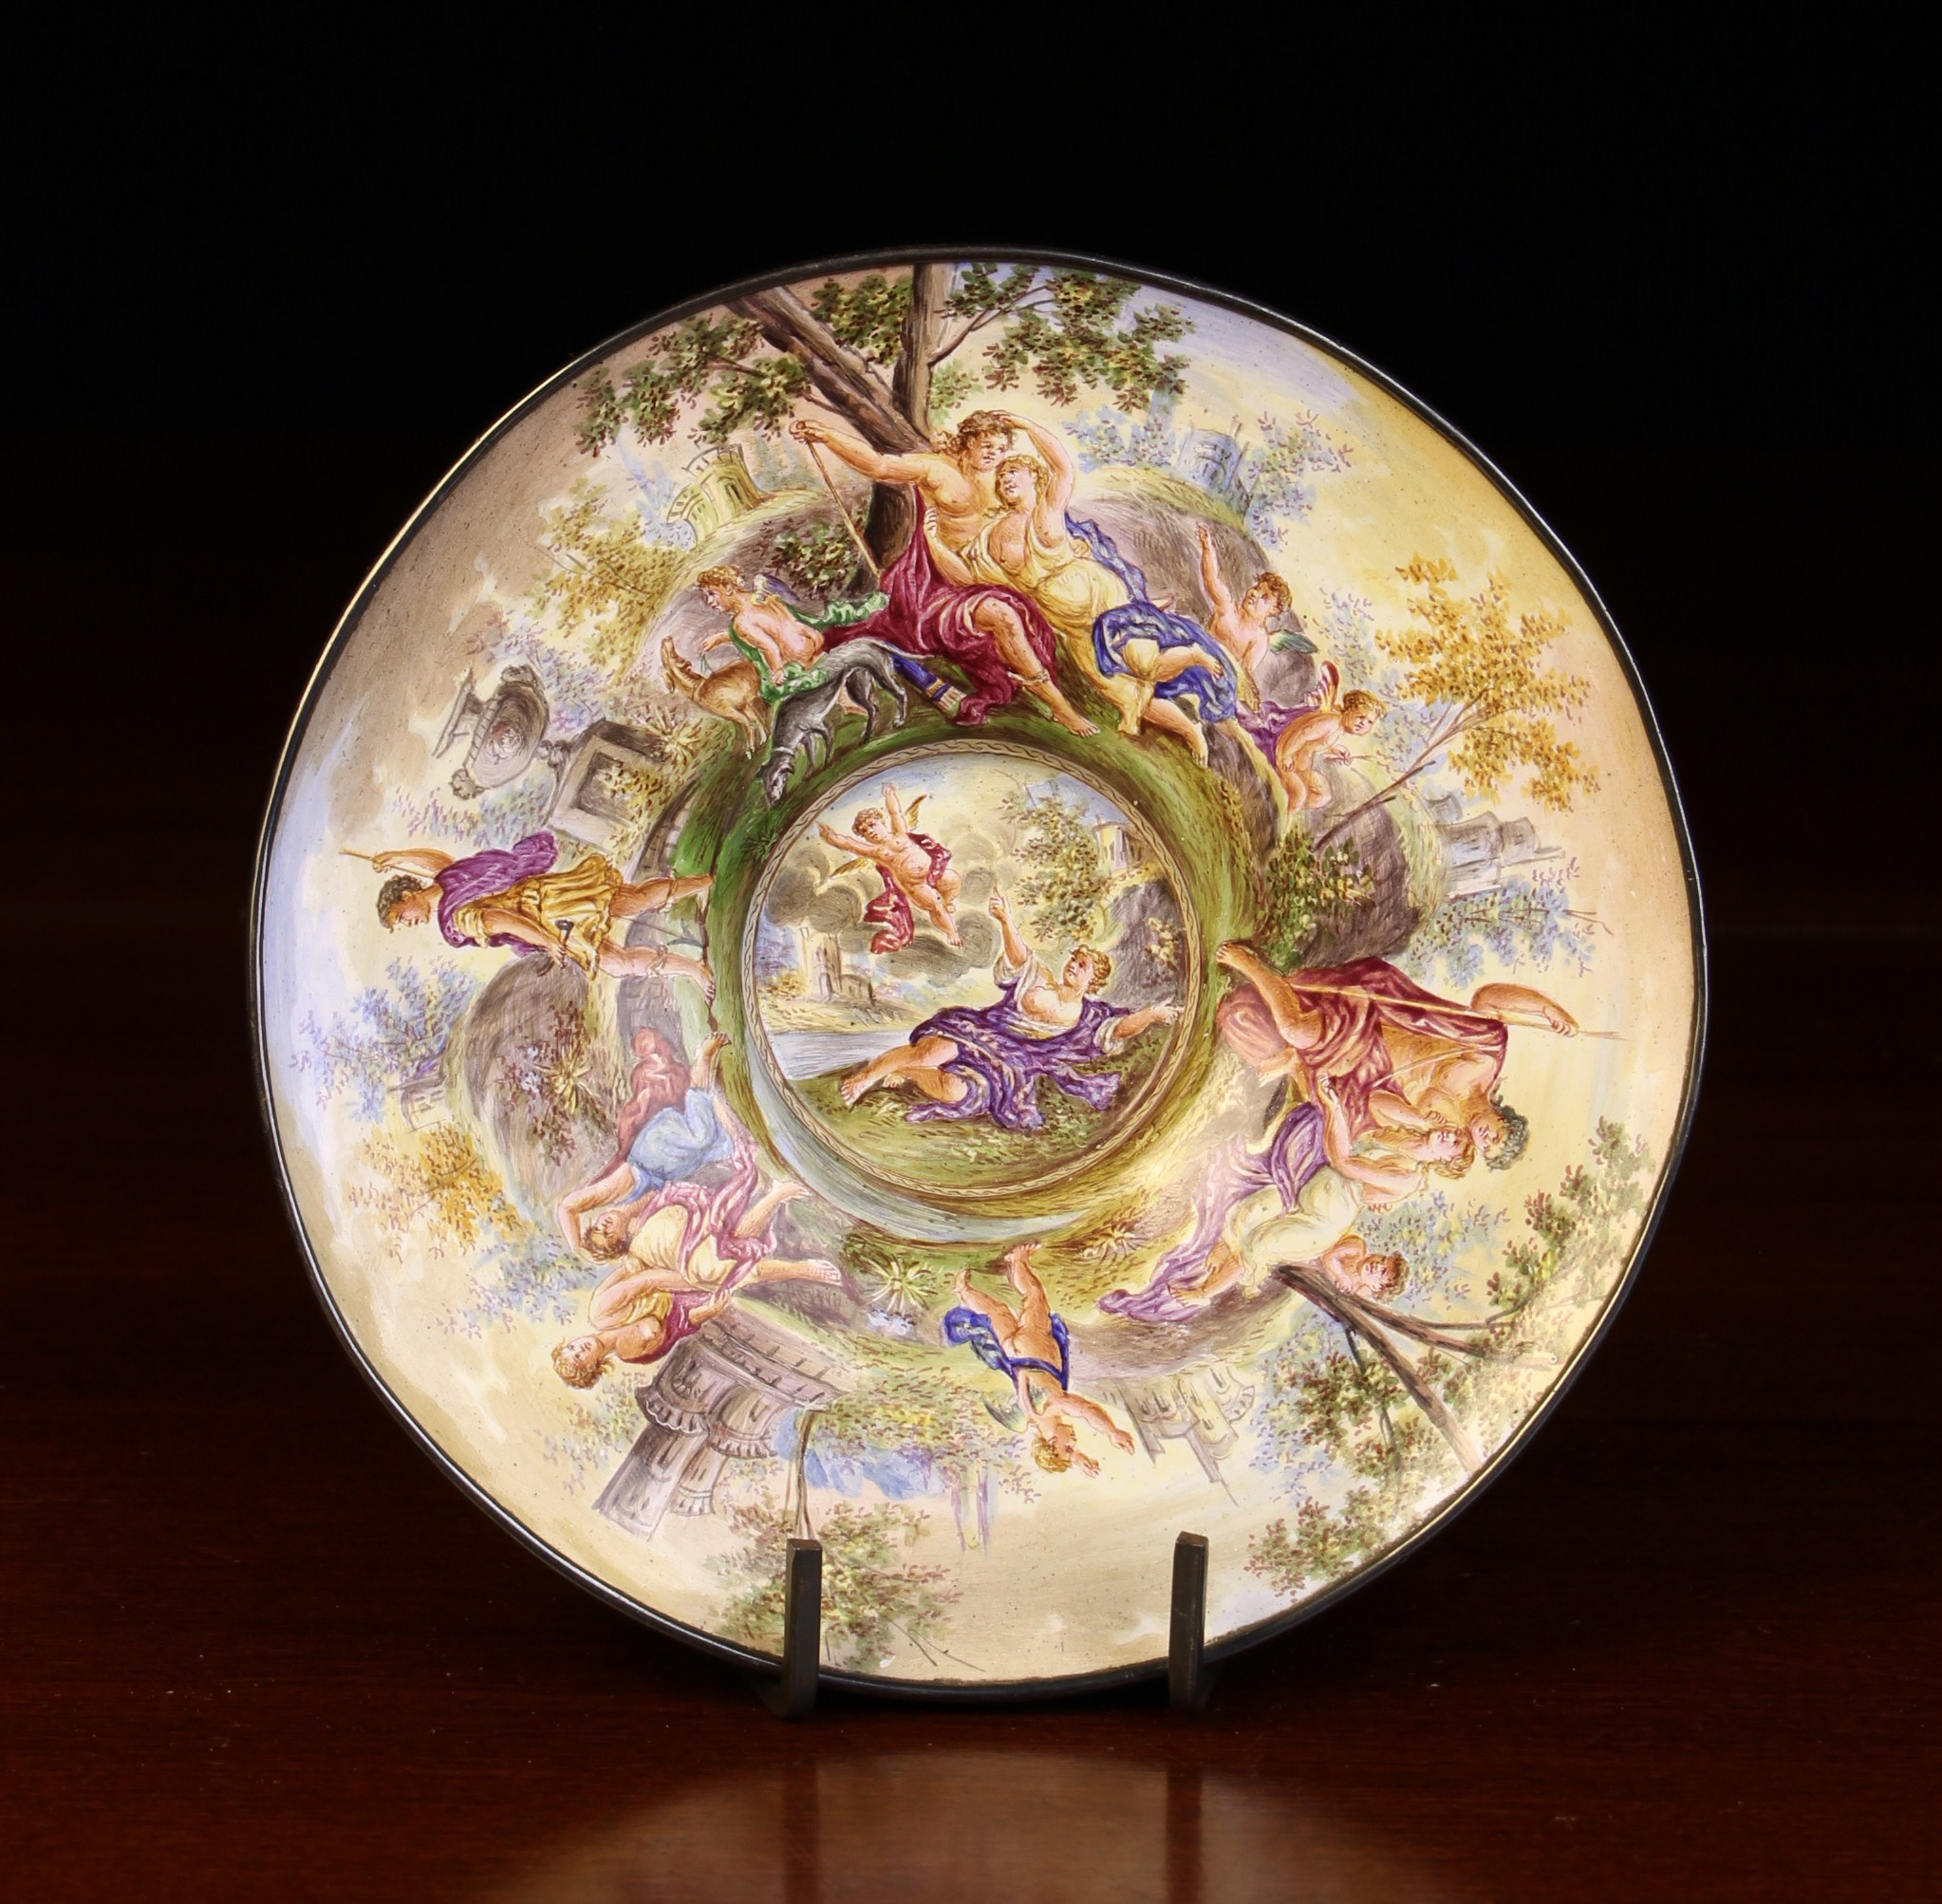 A Fine 19th Century Viennese Enamel Saucer painted in elaborate detail with classical figures